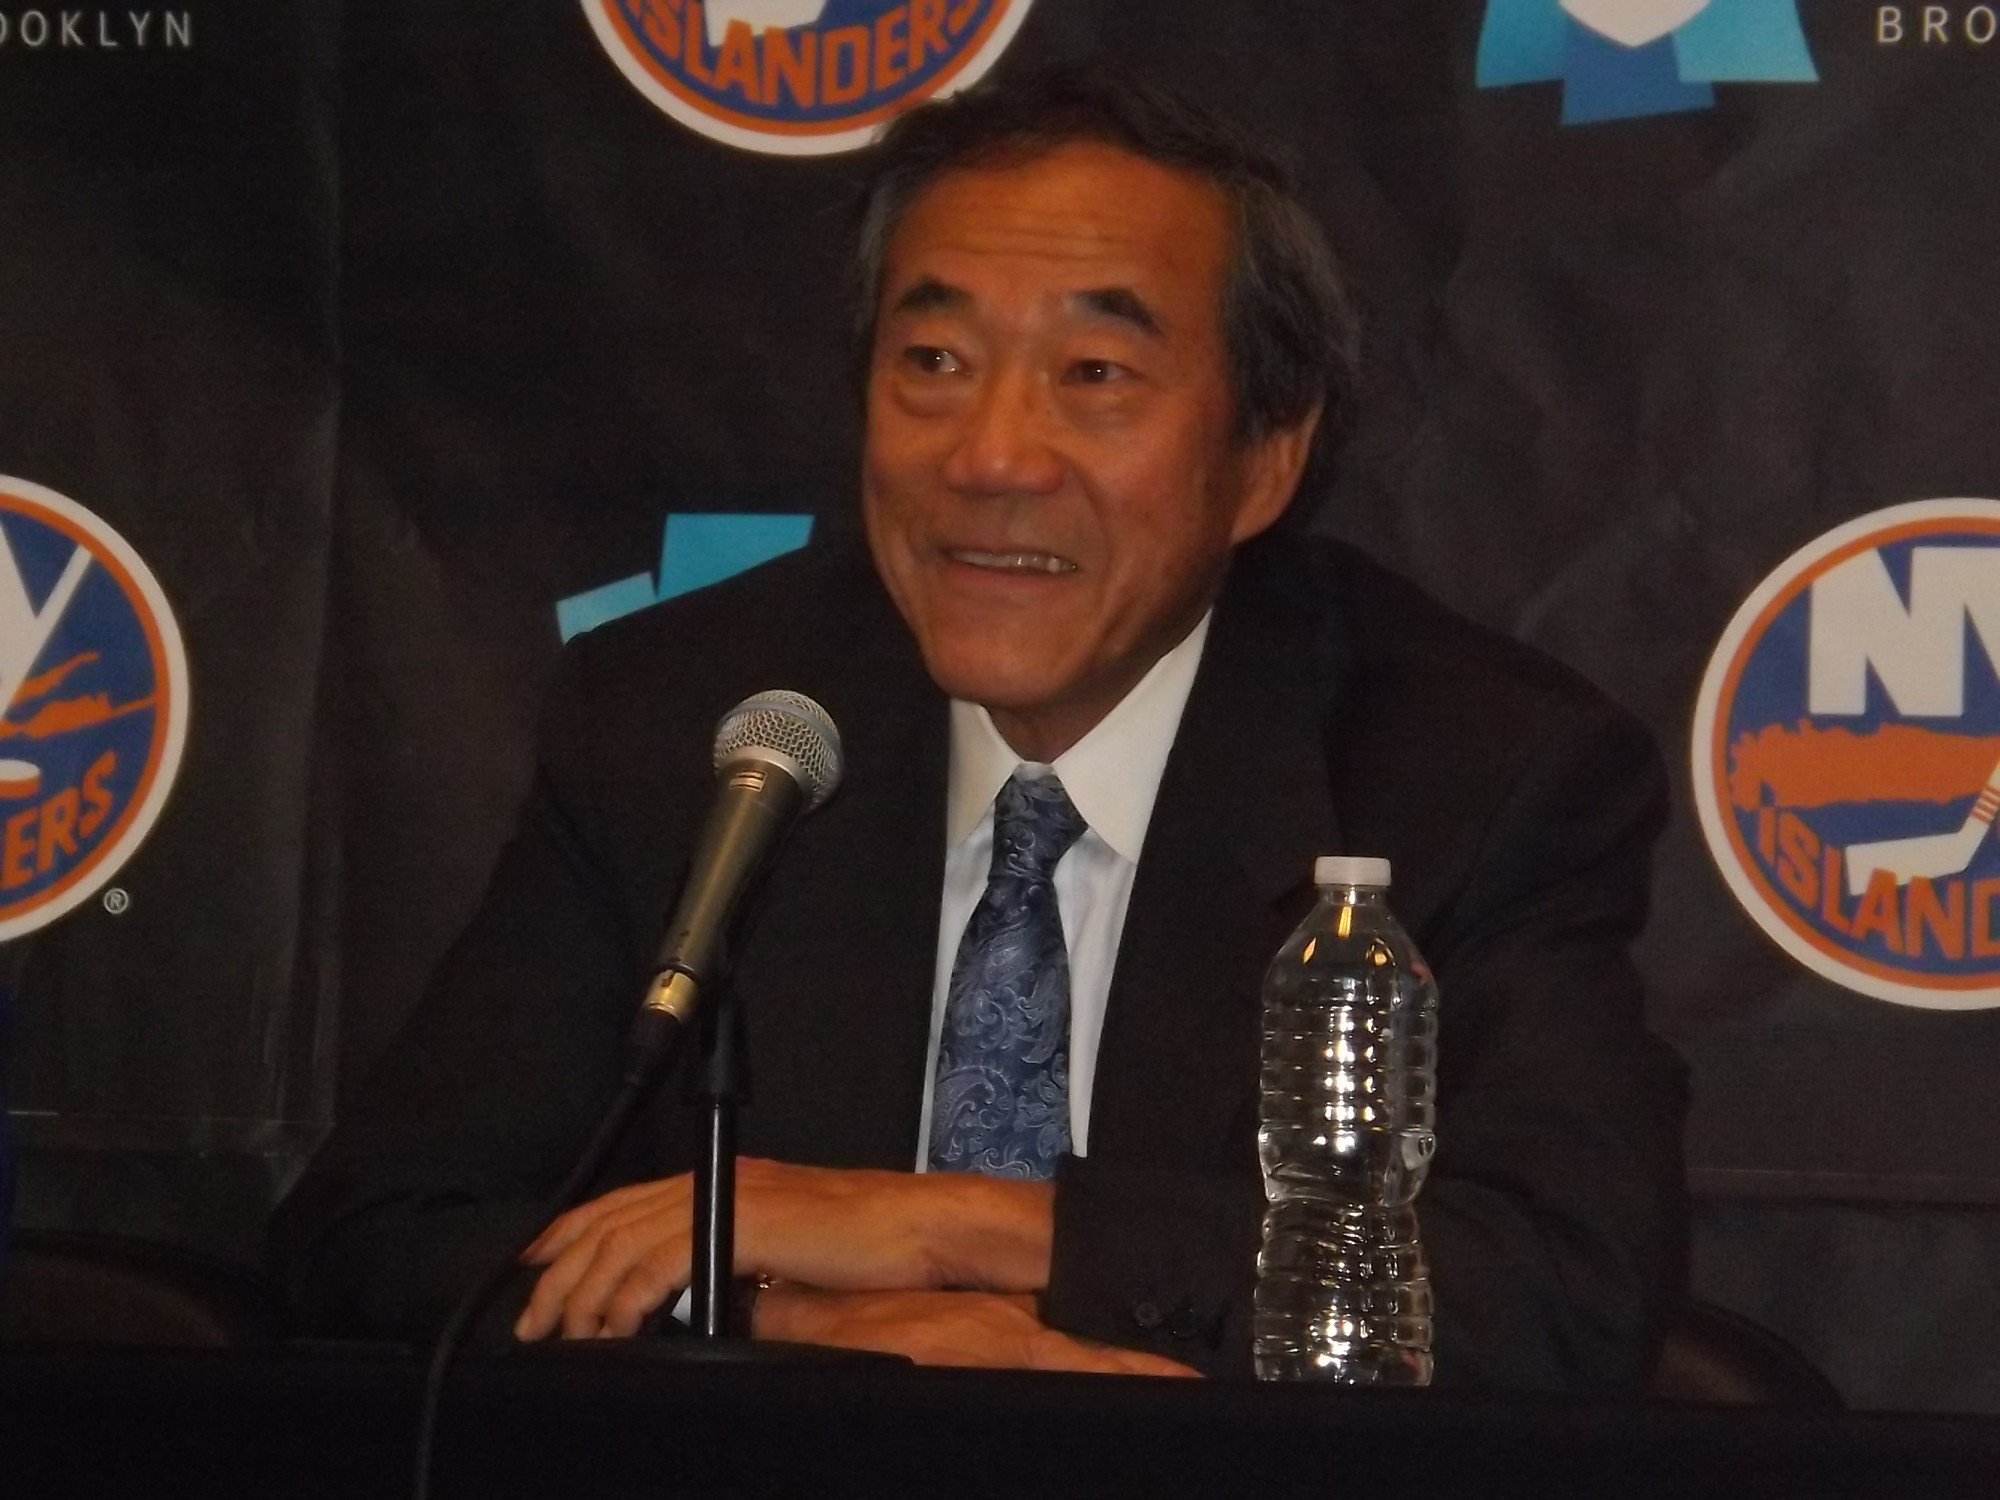 Islanders owner Charles Wang was happy seeing his team on the Barclays Center ice for the first time.